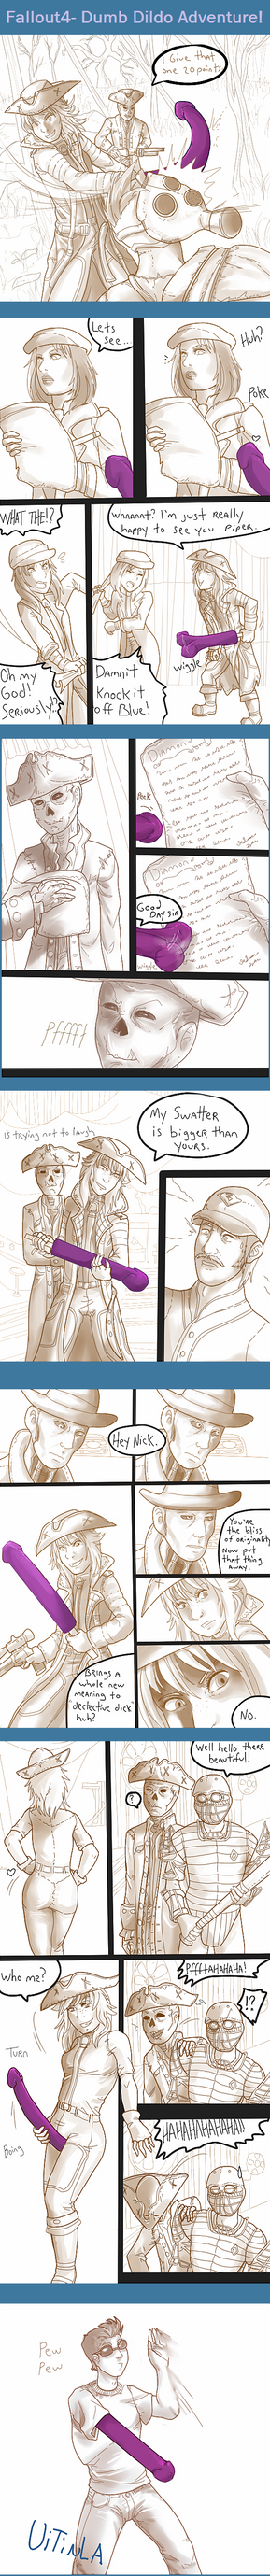 Dildo Sword Adventure- Fallout 4 by Uitinla